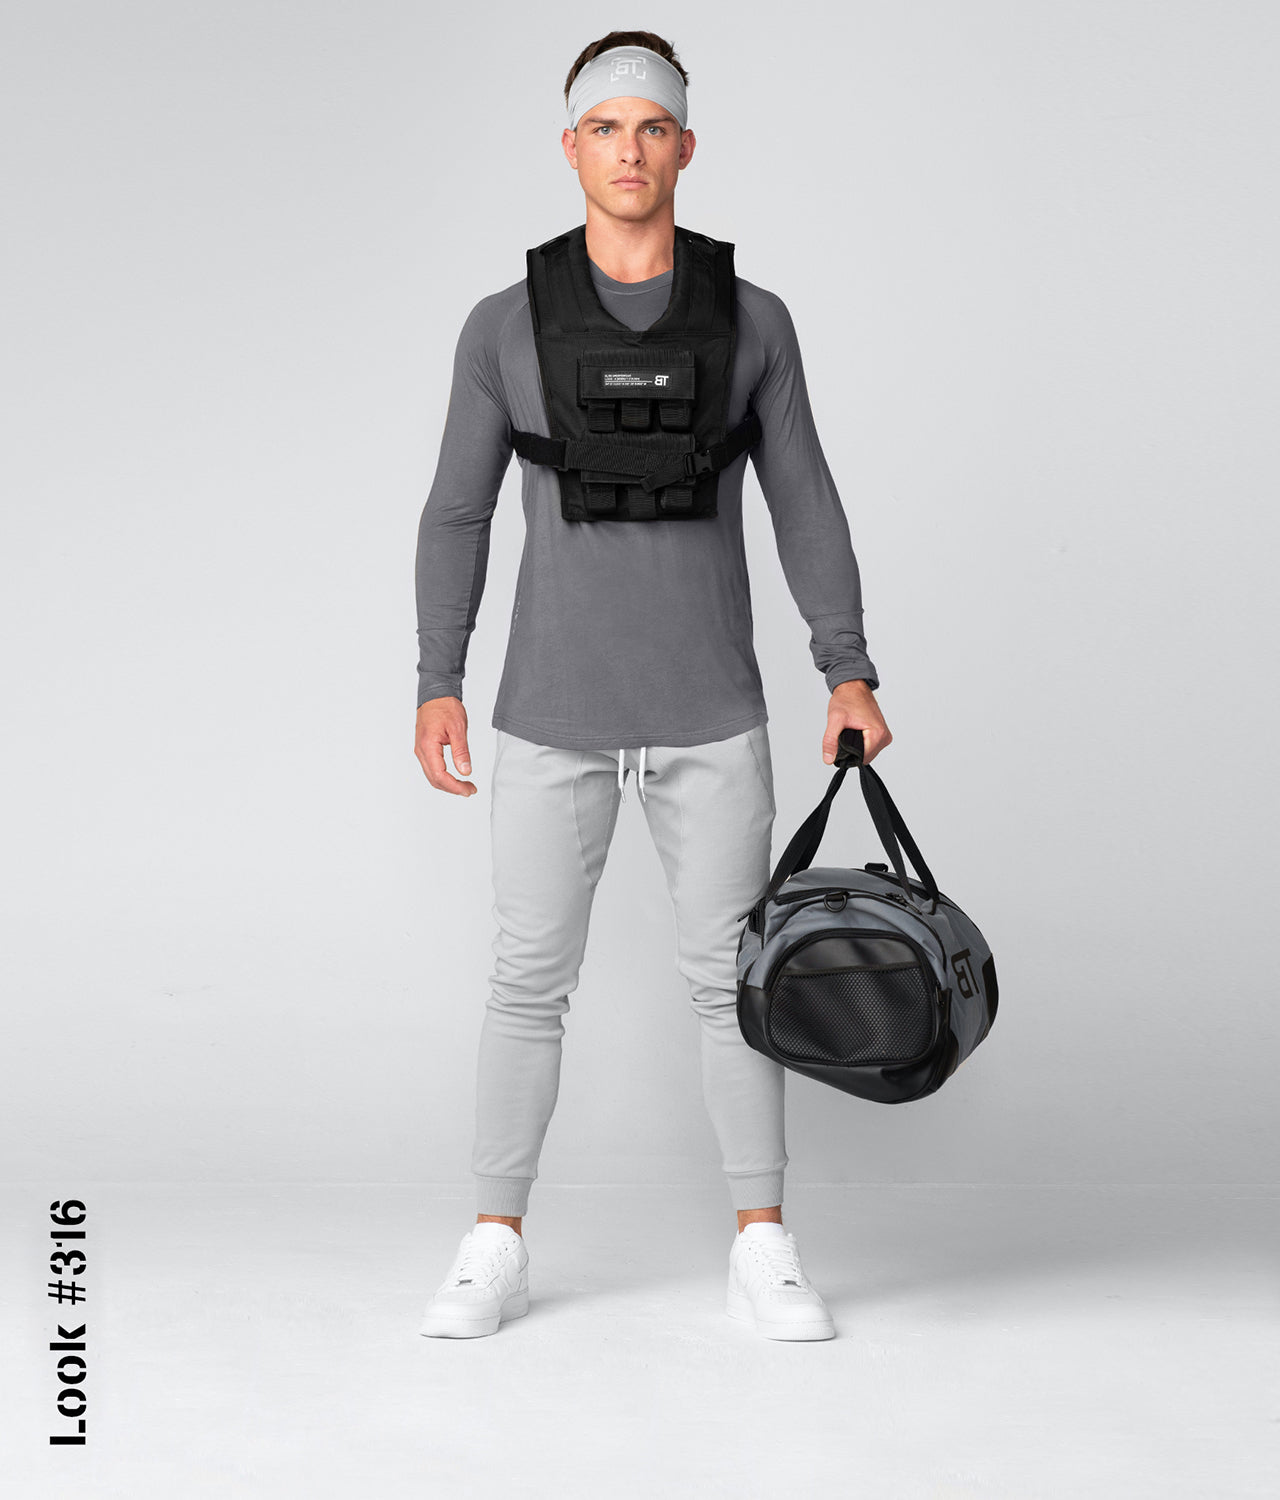 Born Tough Soft & comfortable make Weighted Vest